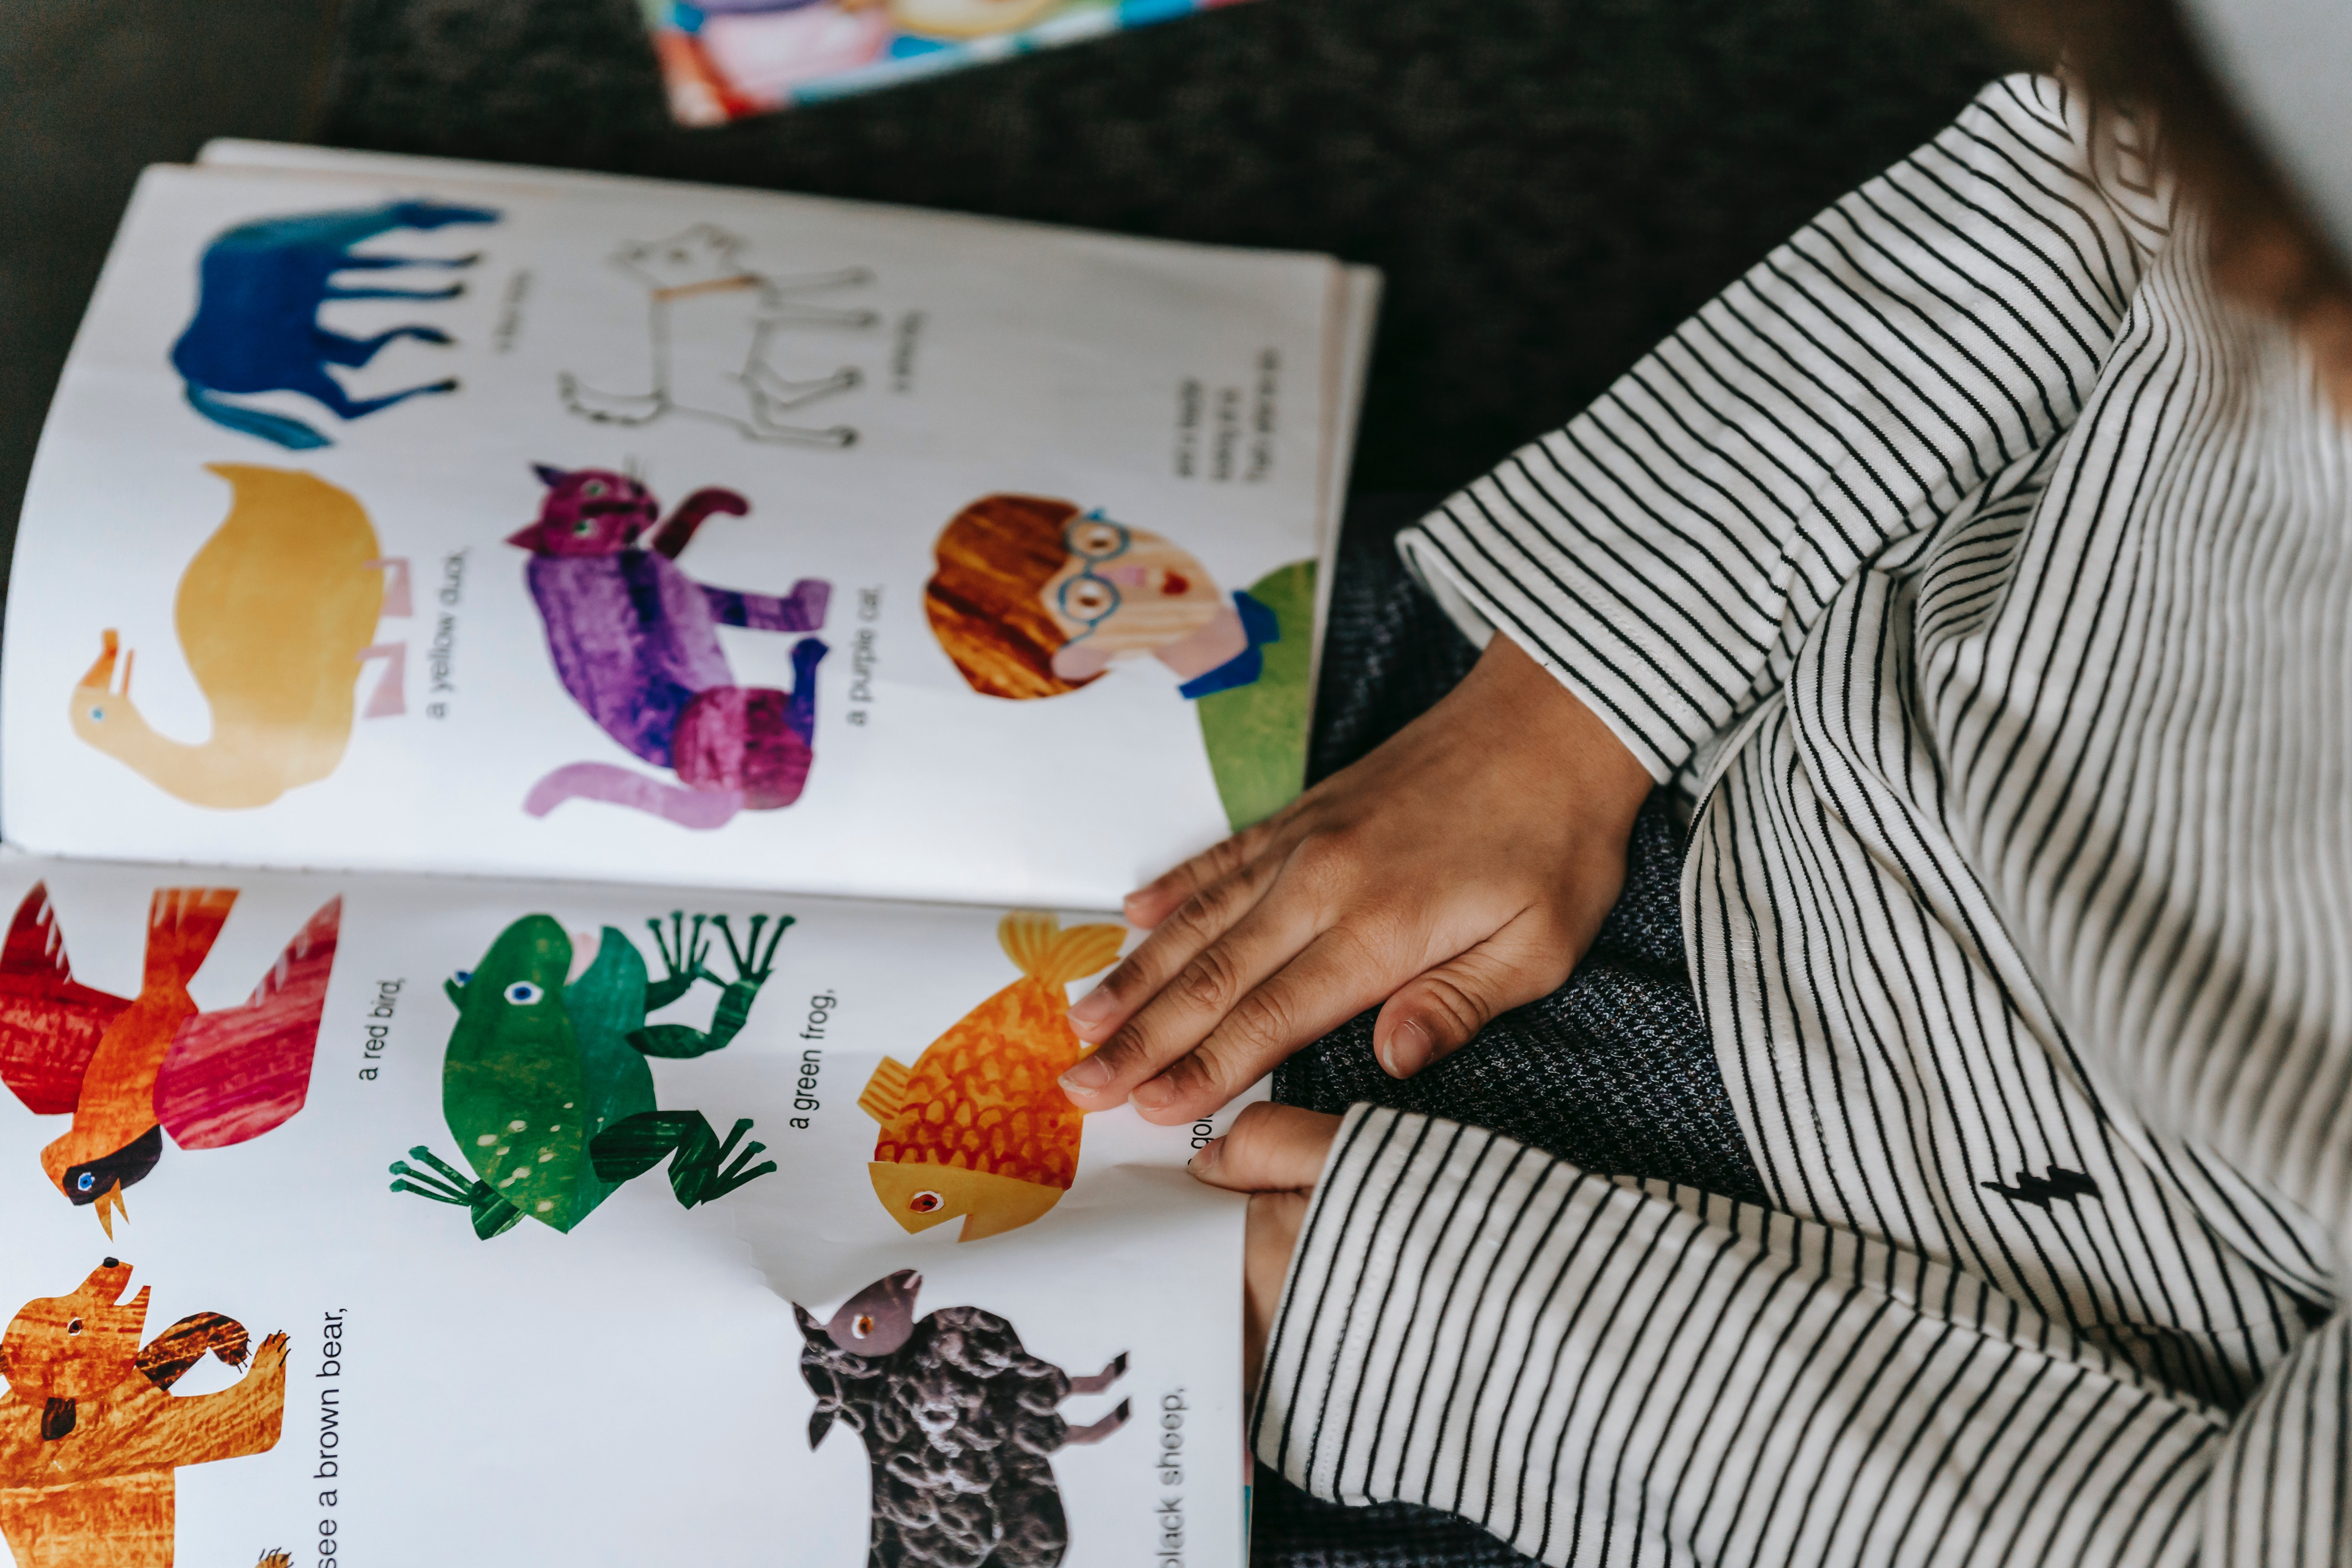 image showing child reading book